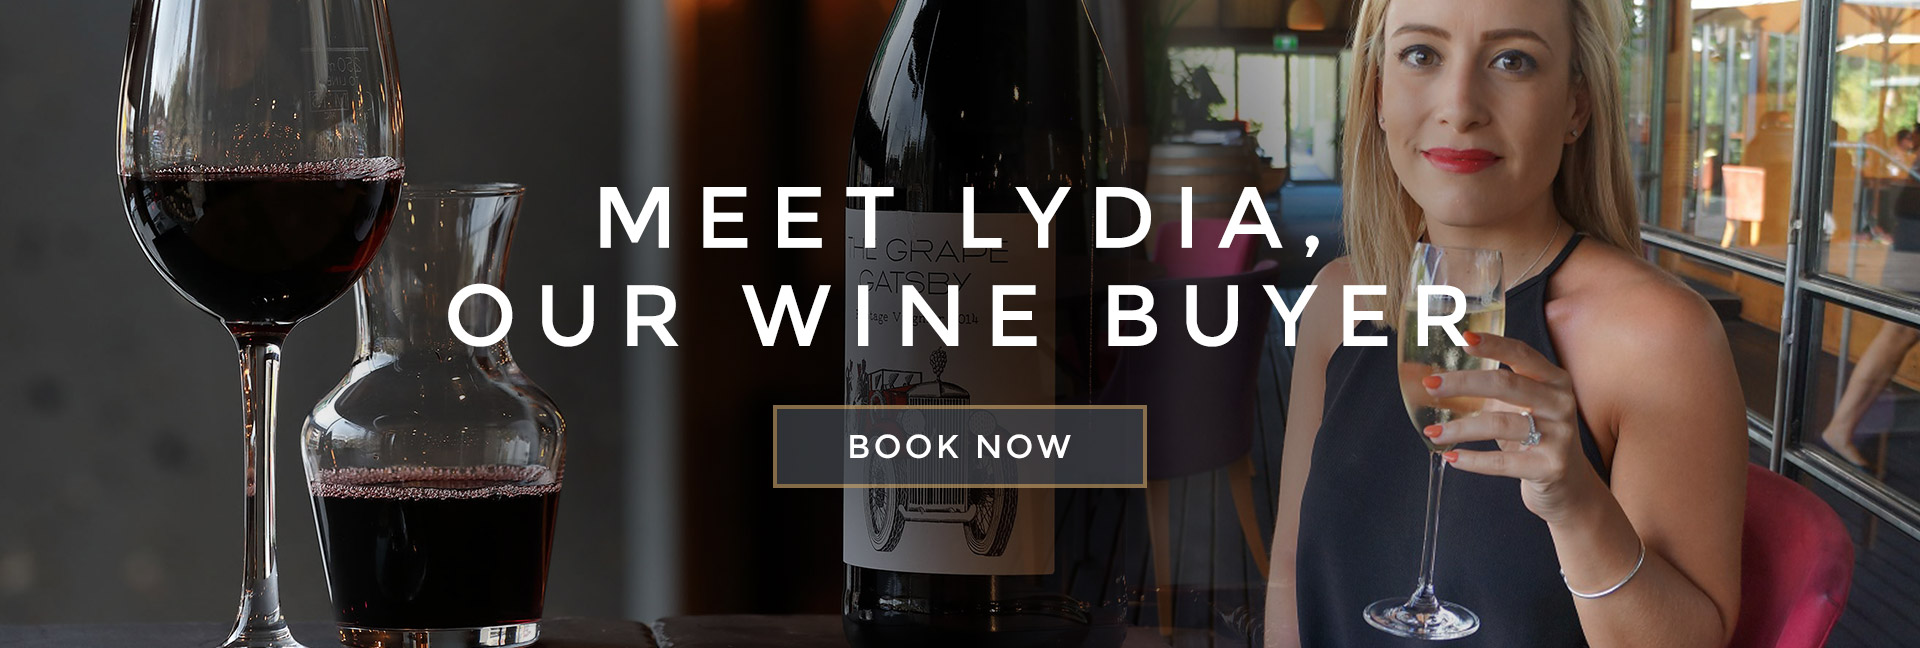 Meet Lydia, our wine buyer at All Bar One Brindleyplace